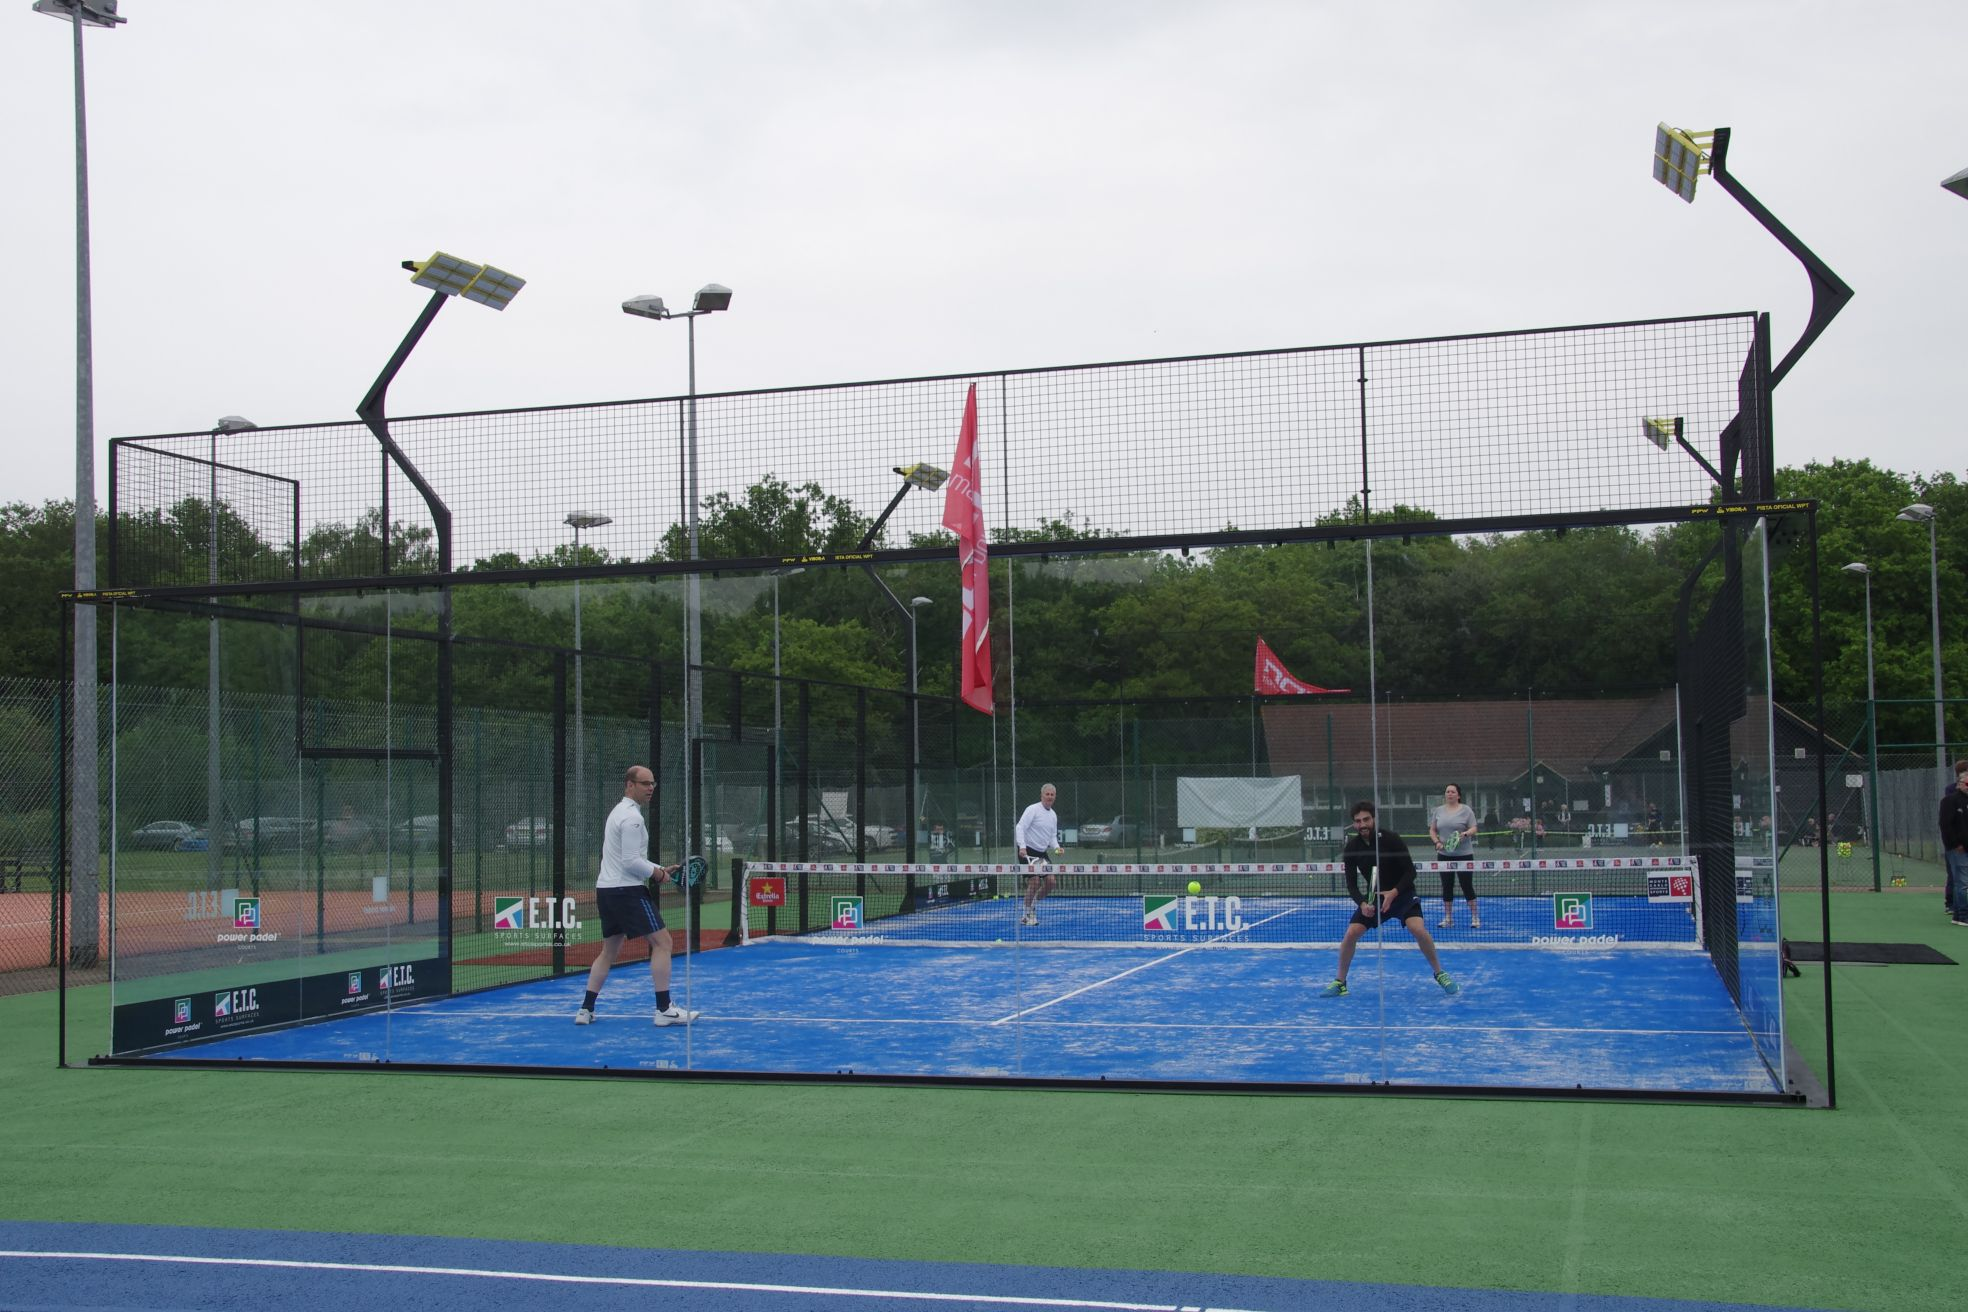 Flexible and affordable, a Power Padel court costs less than you might imagine and is surprisingly easy to install.